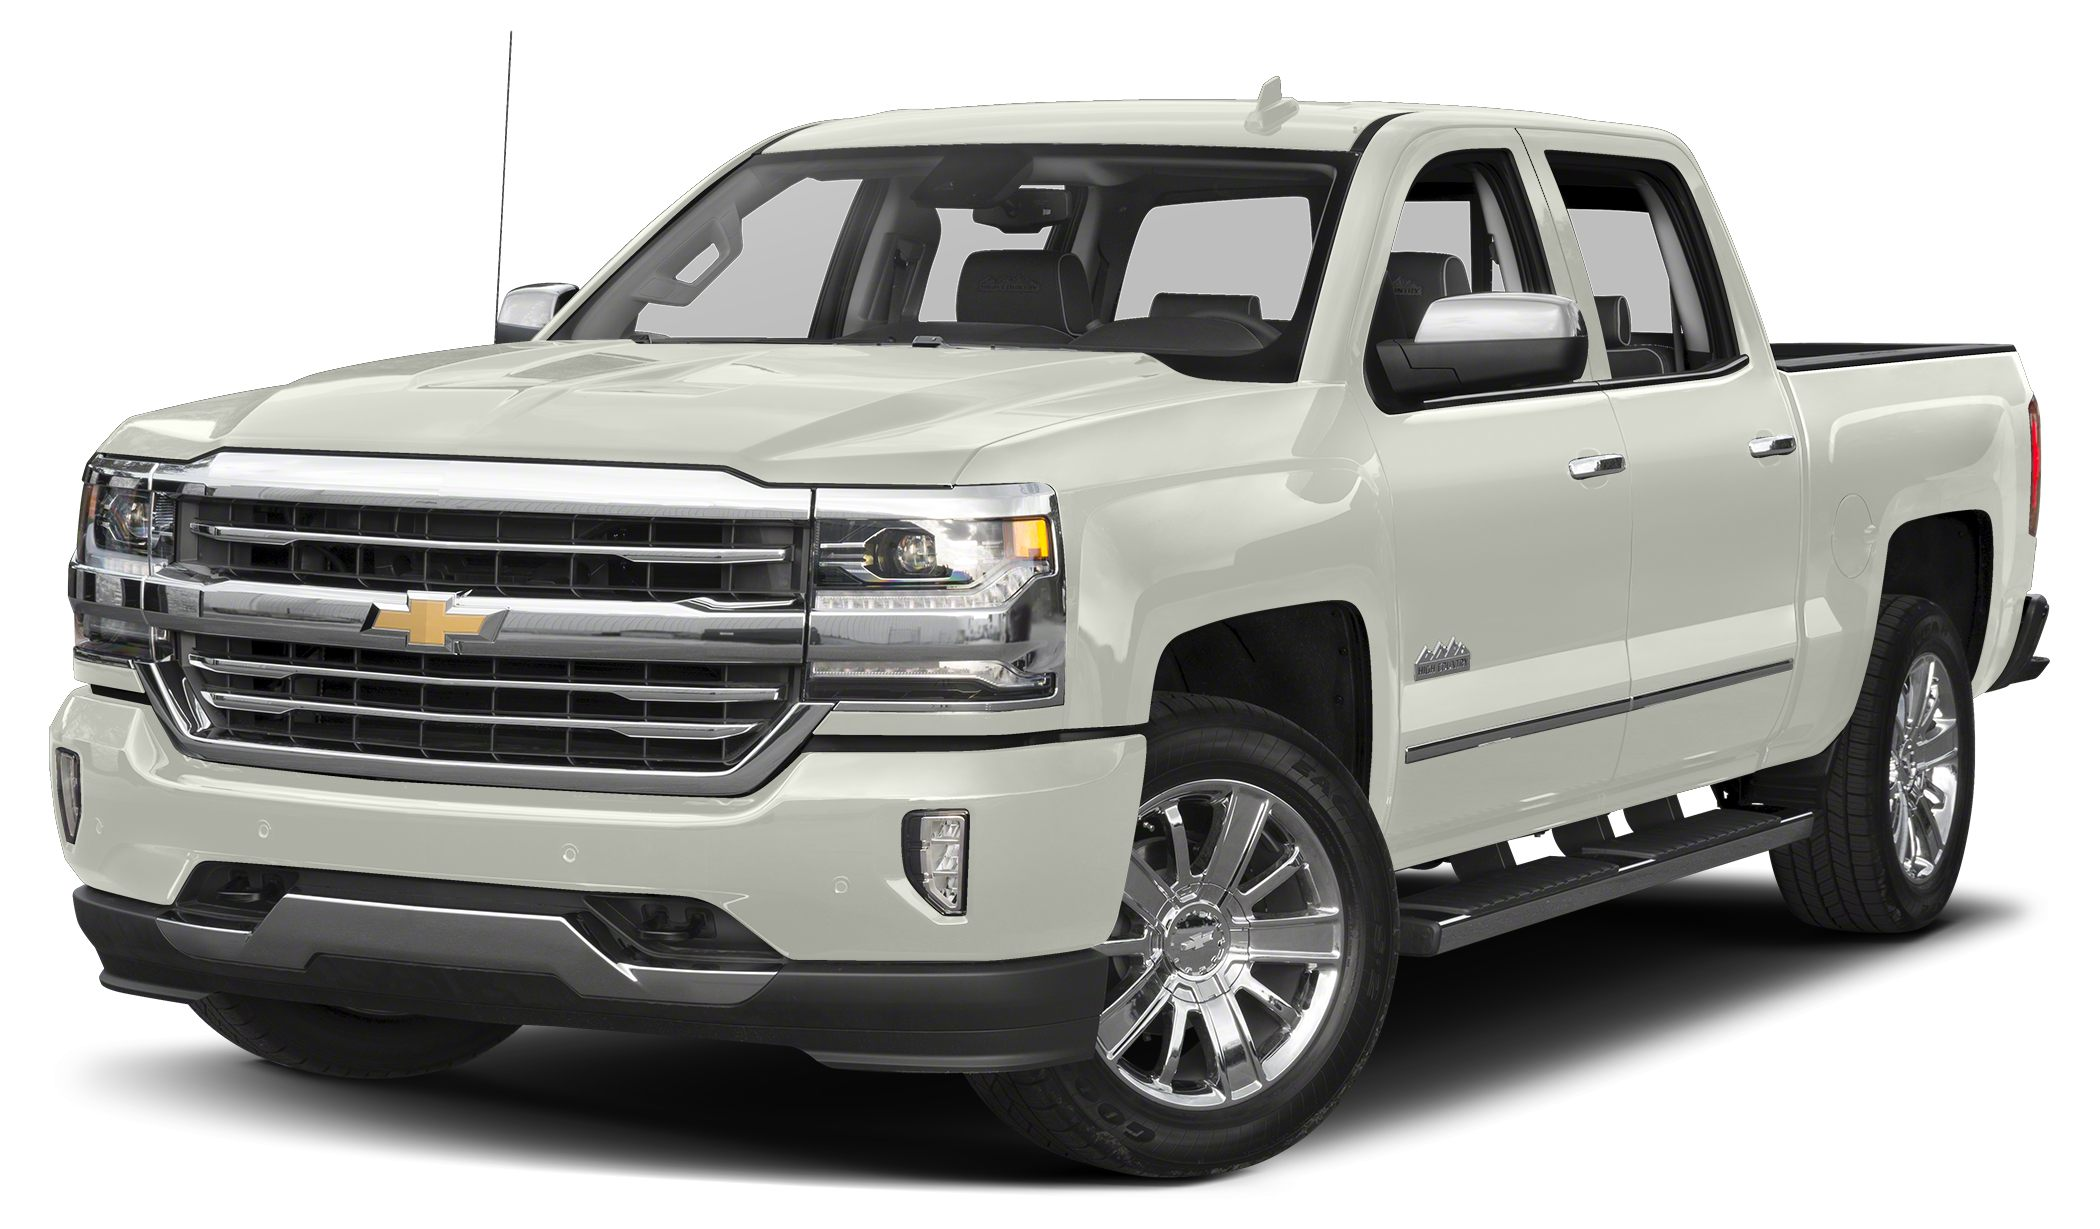 2017 Chevrolet Silverado 1500 High Country All advertised prices exclude government fees and taxes